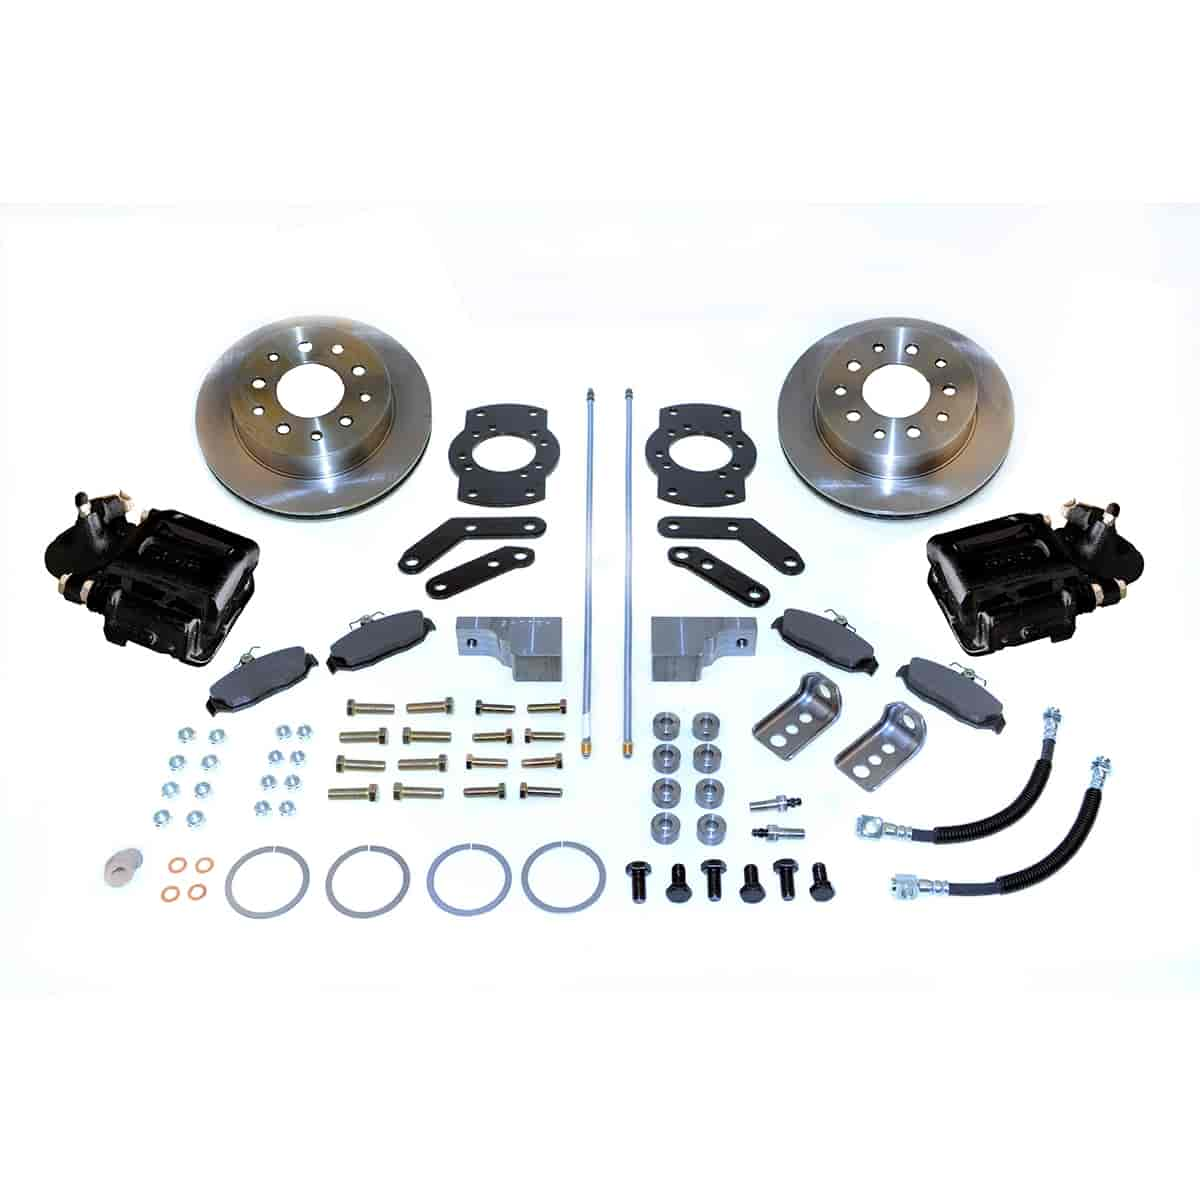 Stainless Steel Brakes A125-3BK - Stainless Steel Brakes Single Piston Rear Disc Brake Conversion Kit